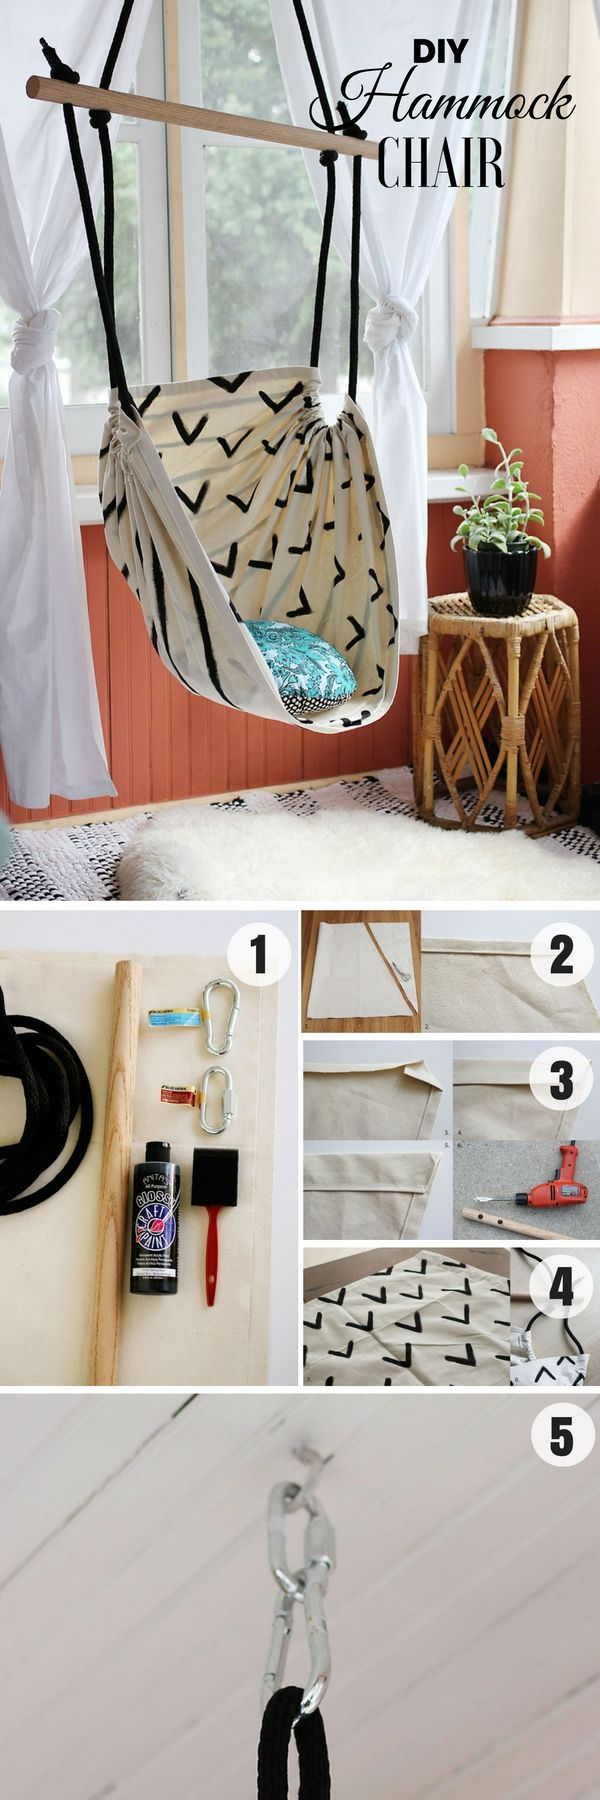 25 best ideas about hammocks on pinterest double for Quirky bedroom items